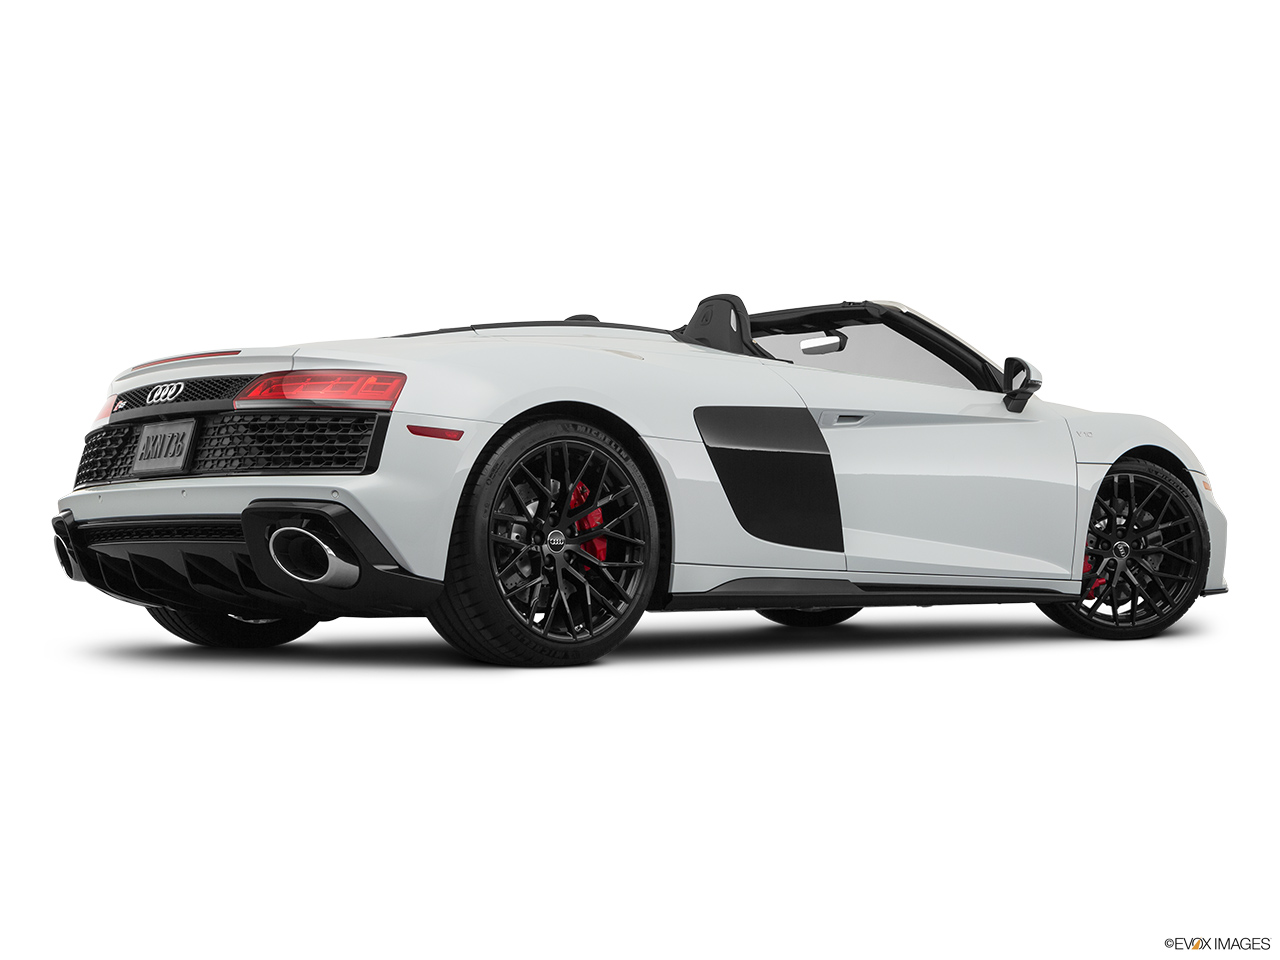 2020 Audi R8 Spyder V10 Low/wide rear 5/8.